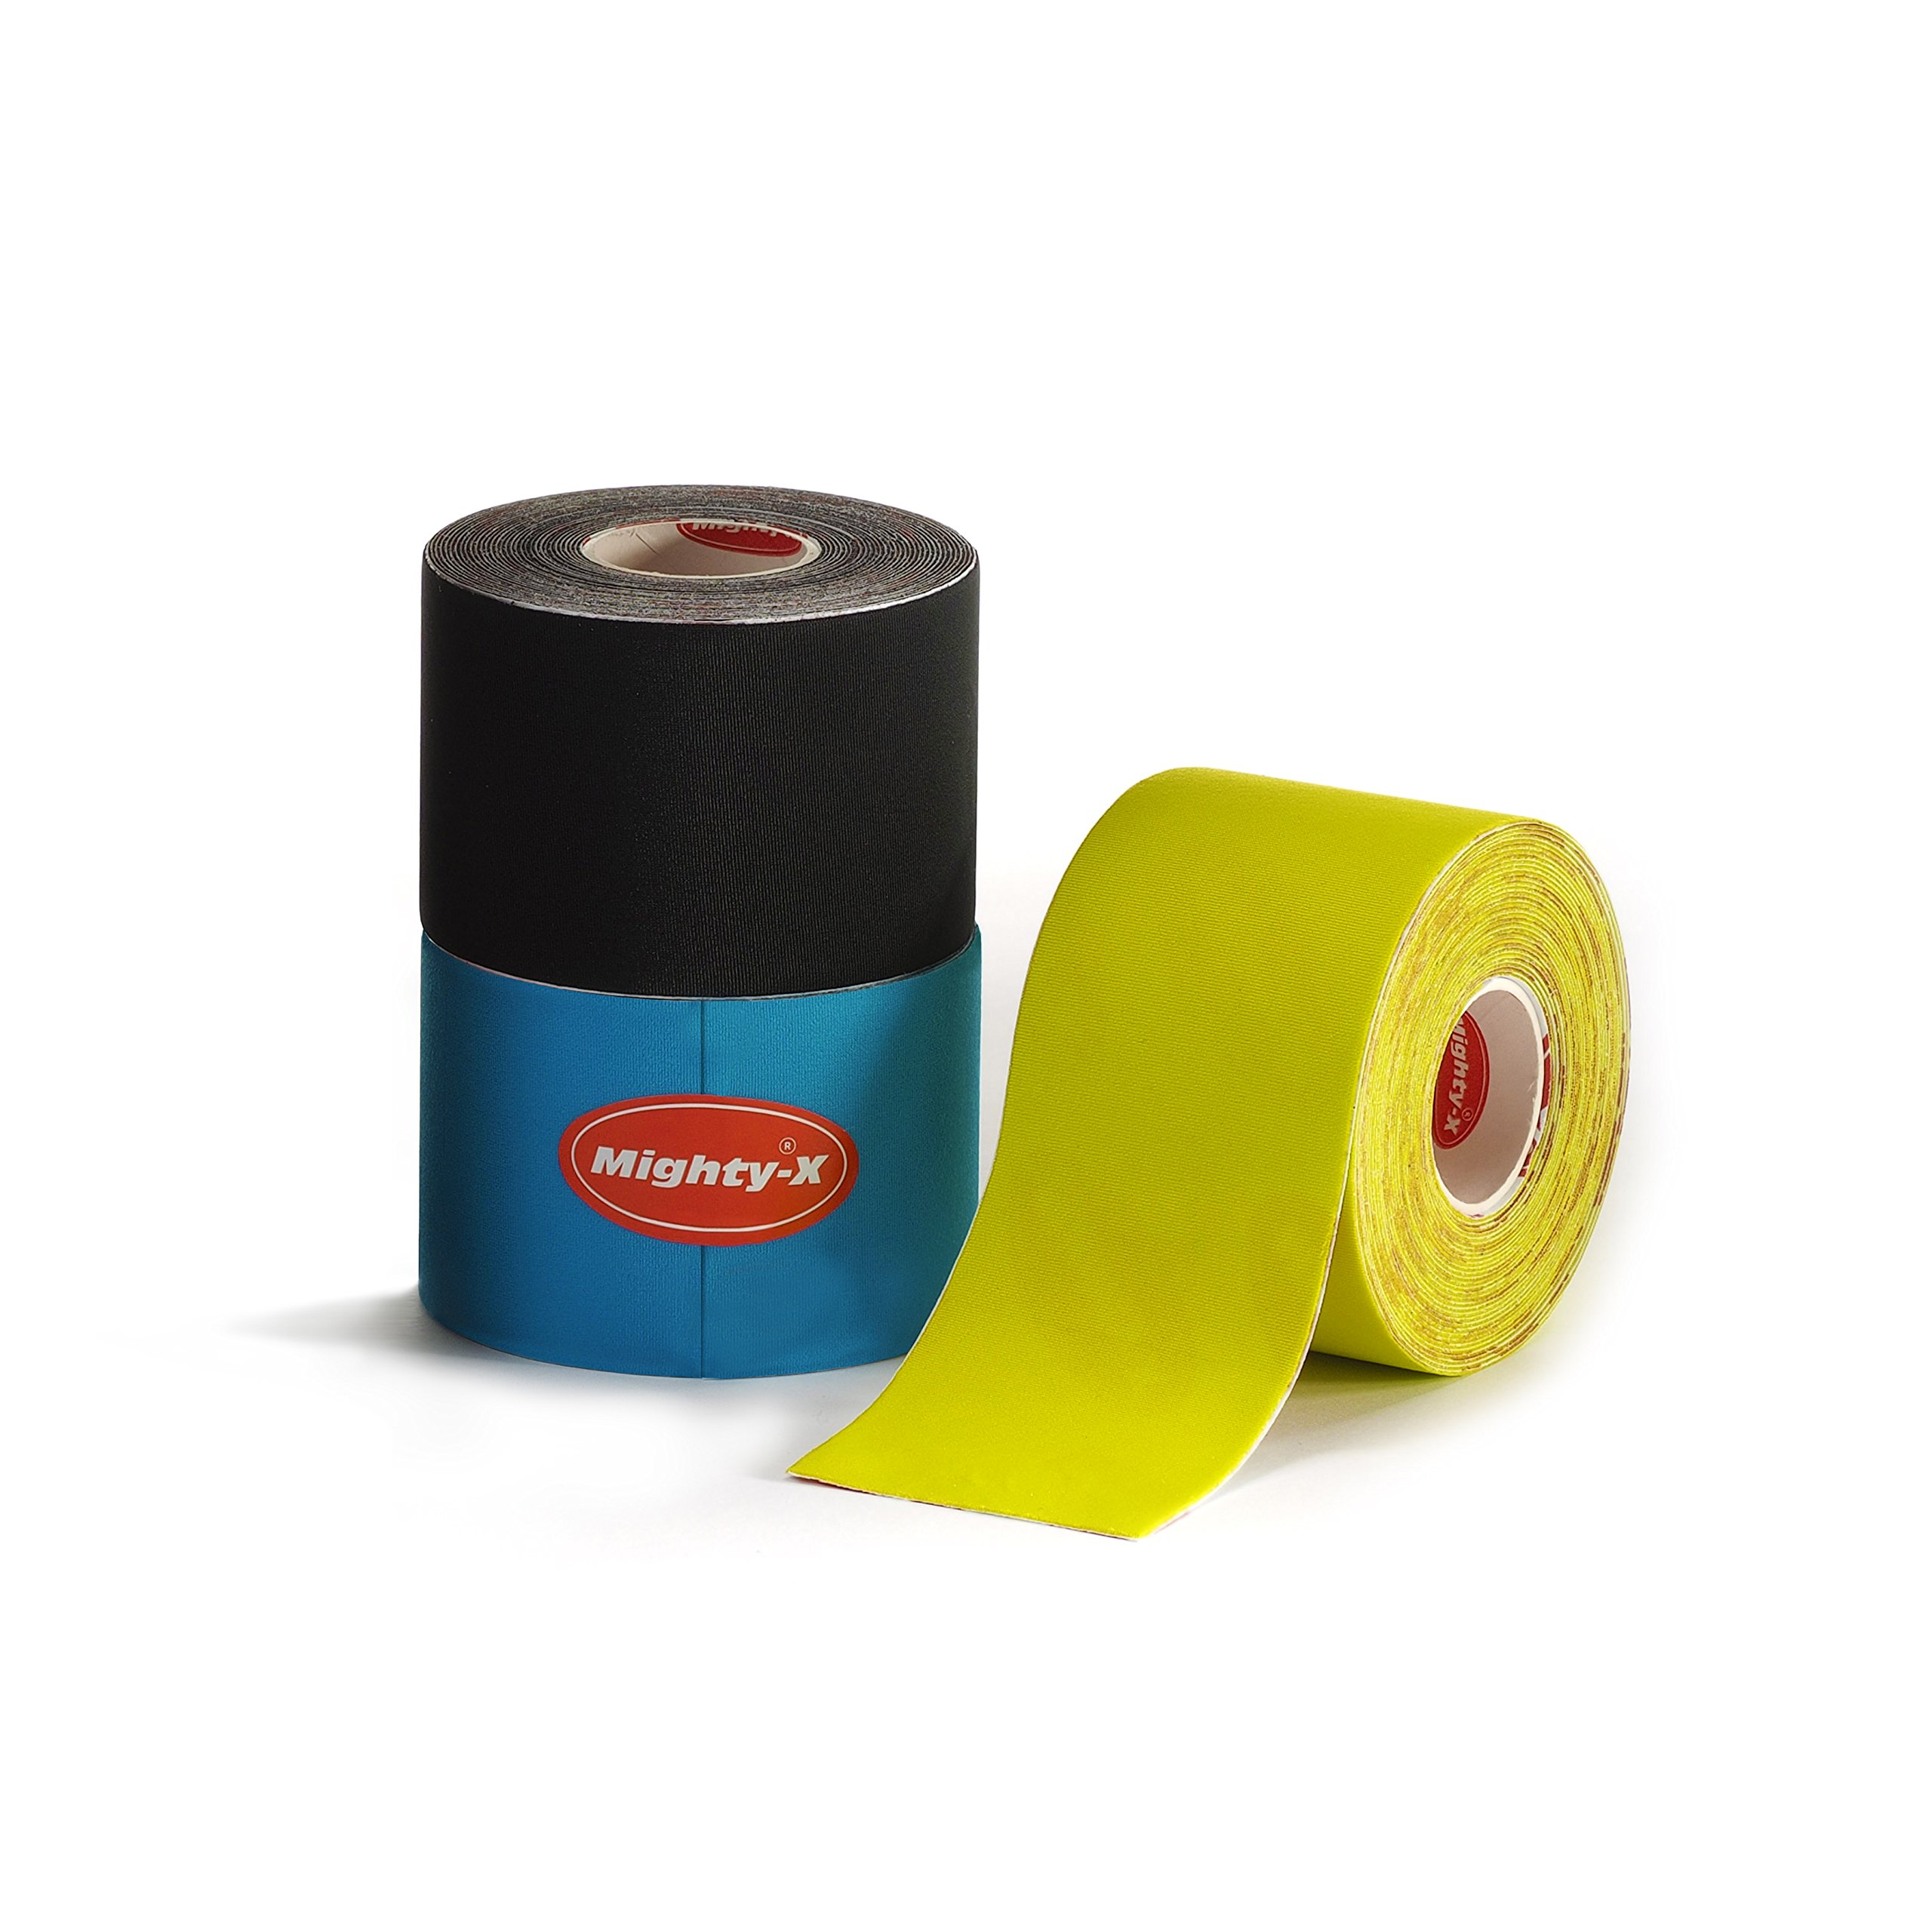 """Professional Kinesiology Tape - 3 Pack Mixed - Uncut Tape - Synthetic Kinetic Tape - Heavy Duty Sport Tape - Muscle Tape - KTape - Knee Tape - Premium Synthetic Sports Tape - K Tape - 2"""" x 5y by Mighty-X (Image #3)"""